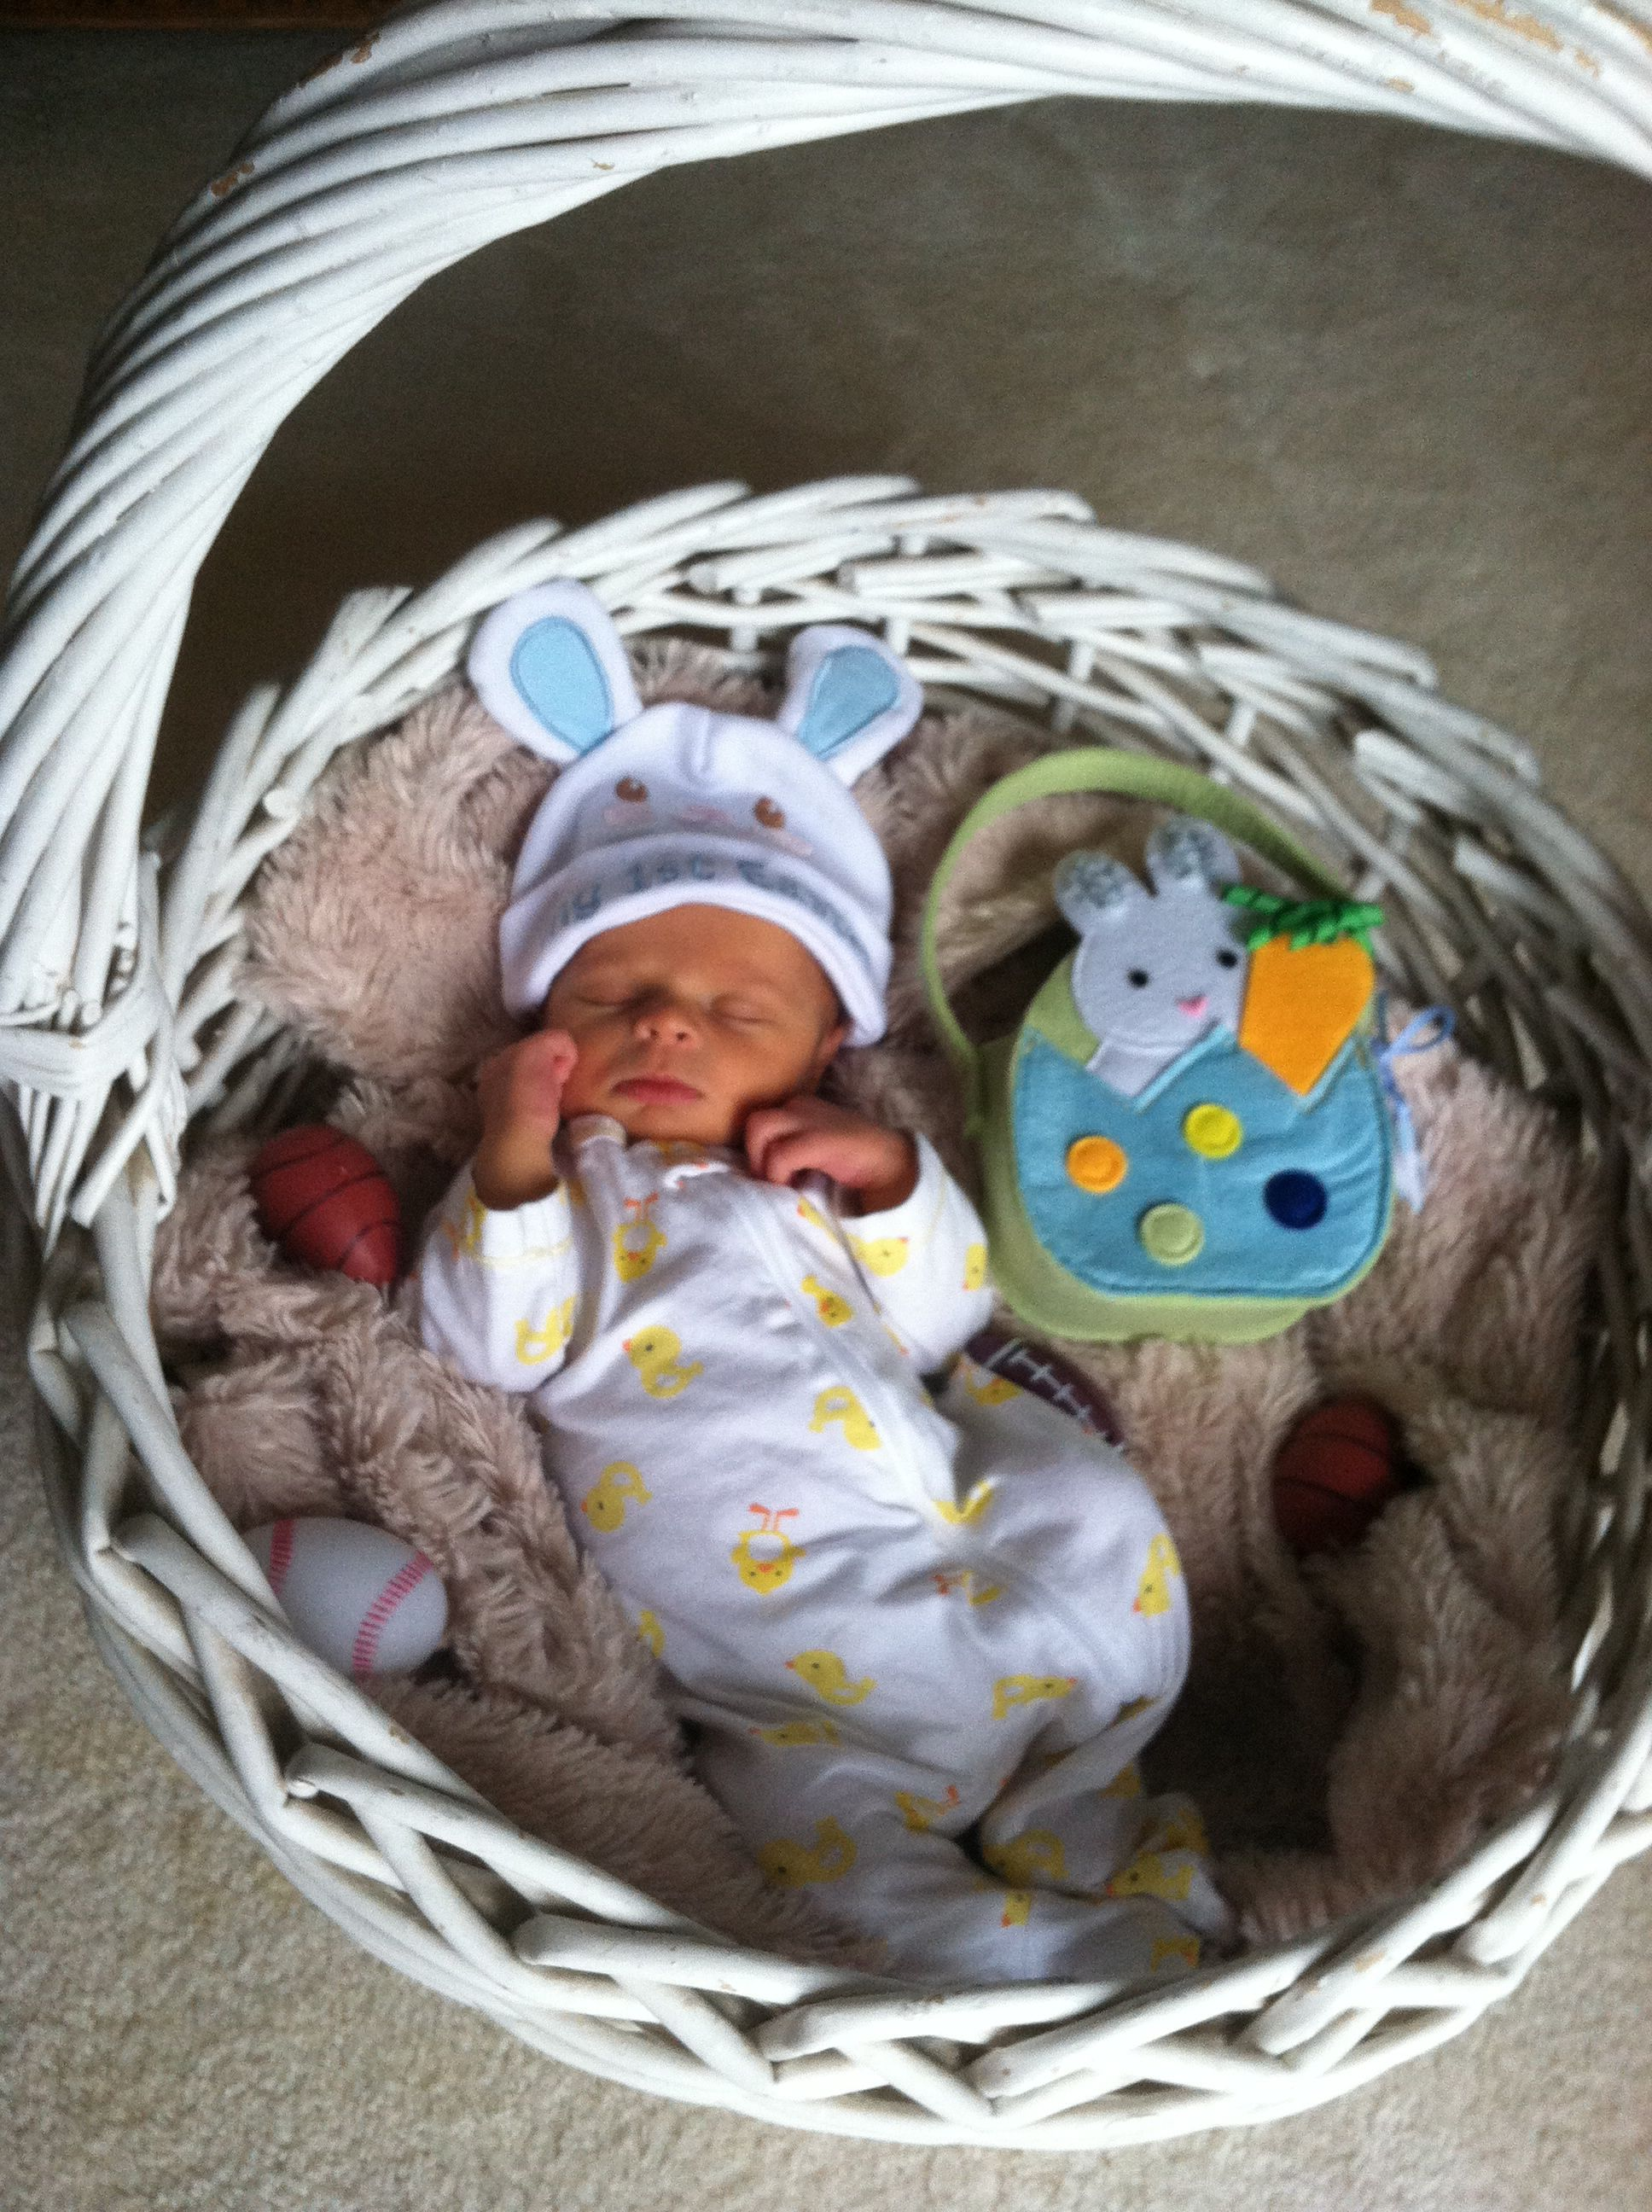 Babys first easter babbiess3 pinterest easter babies and babys first easter negle Images